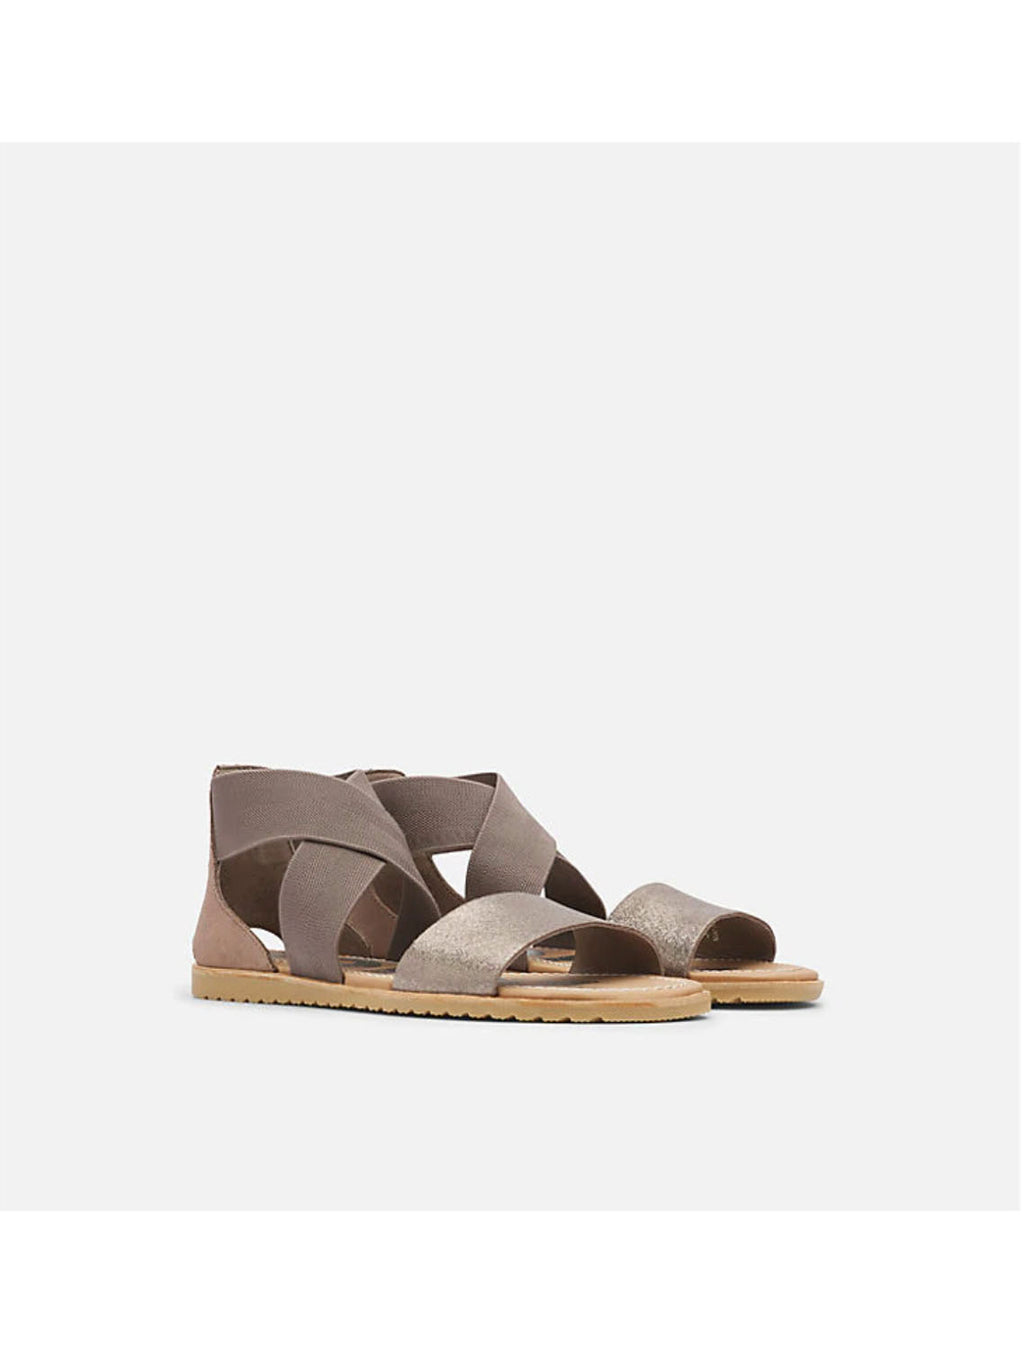 Sorel Ella Sandal in Ash Brown Metallic